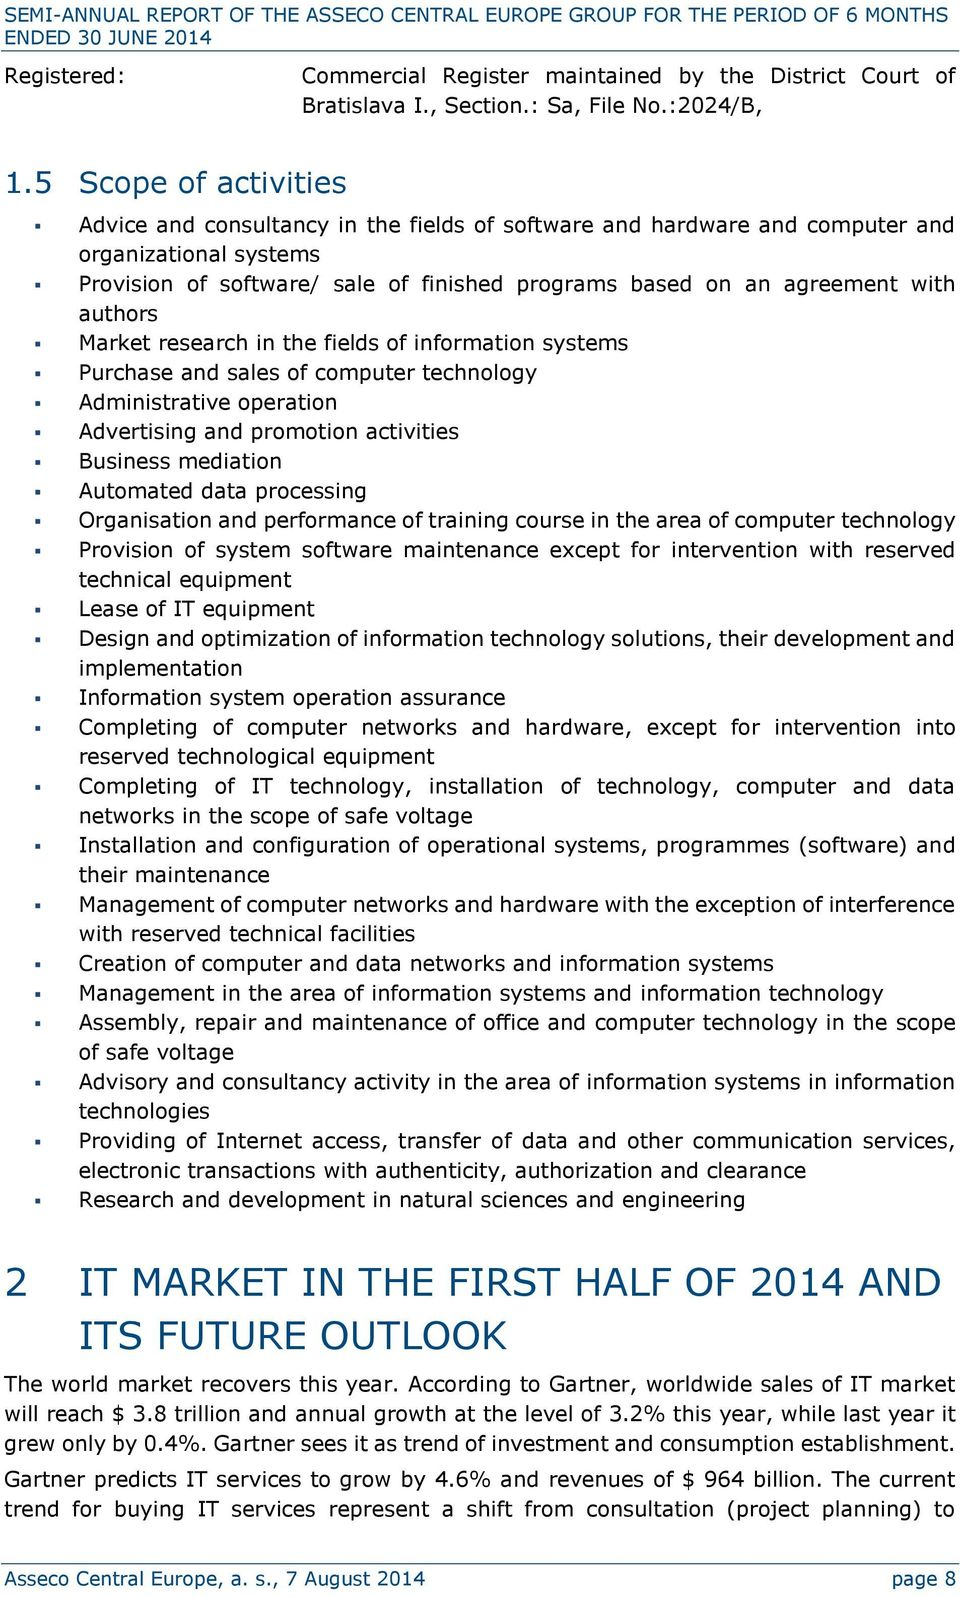 5 Scope of activities Advice and consultancy in the fields of software and hardware and computer and organizational systems Provision of software/ sale of finished programs based on an agreement with